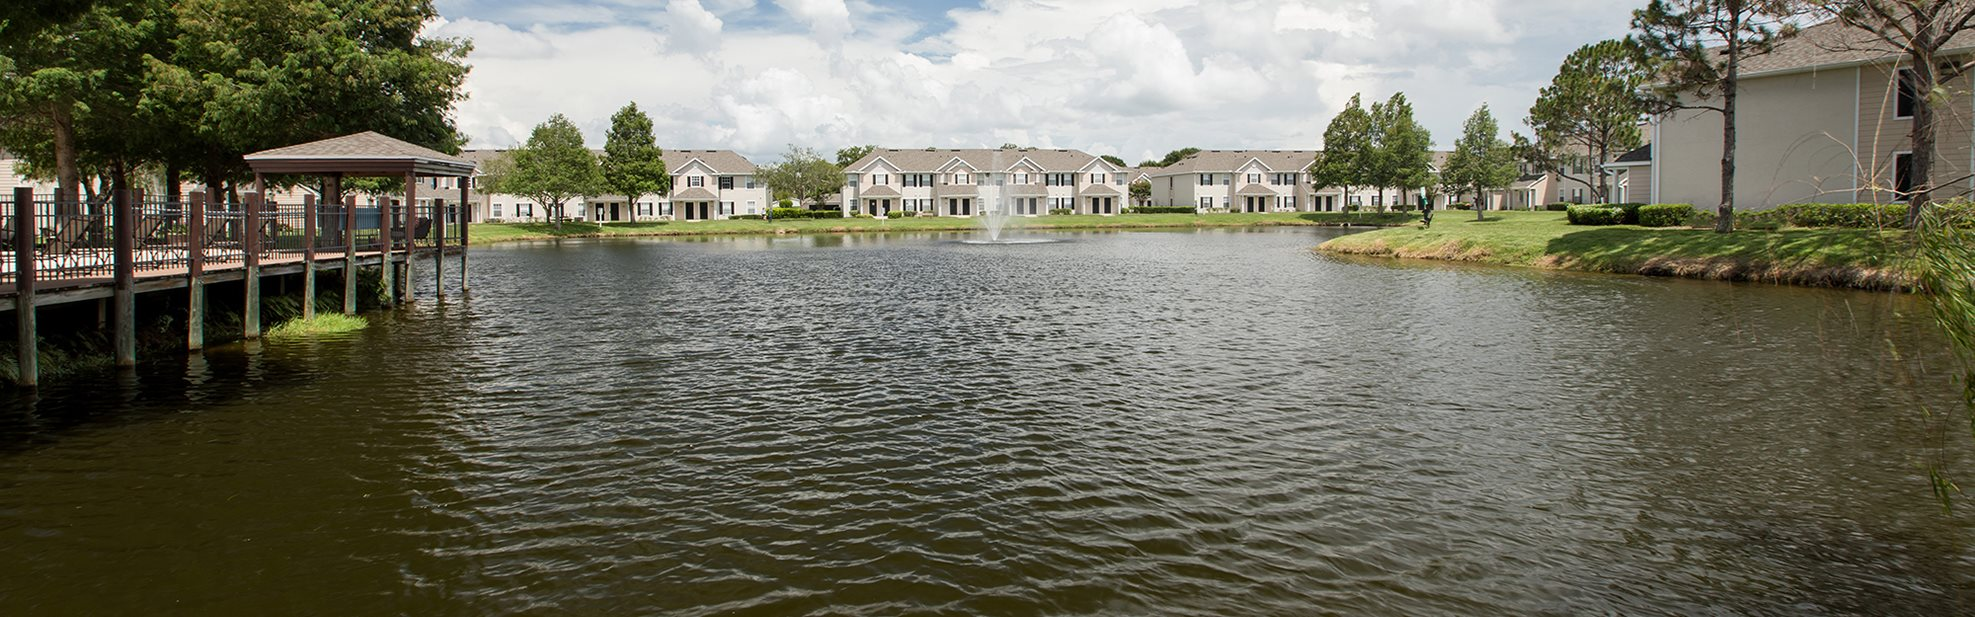 Summer Cove Apartments for rent in Saint Cloud, FL. Make this community your new home or visit other Concord Rents communities at ConcordRents.com. Lake view